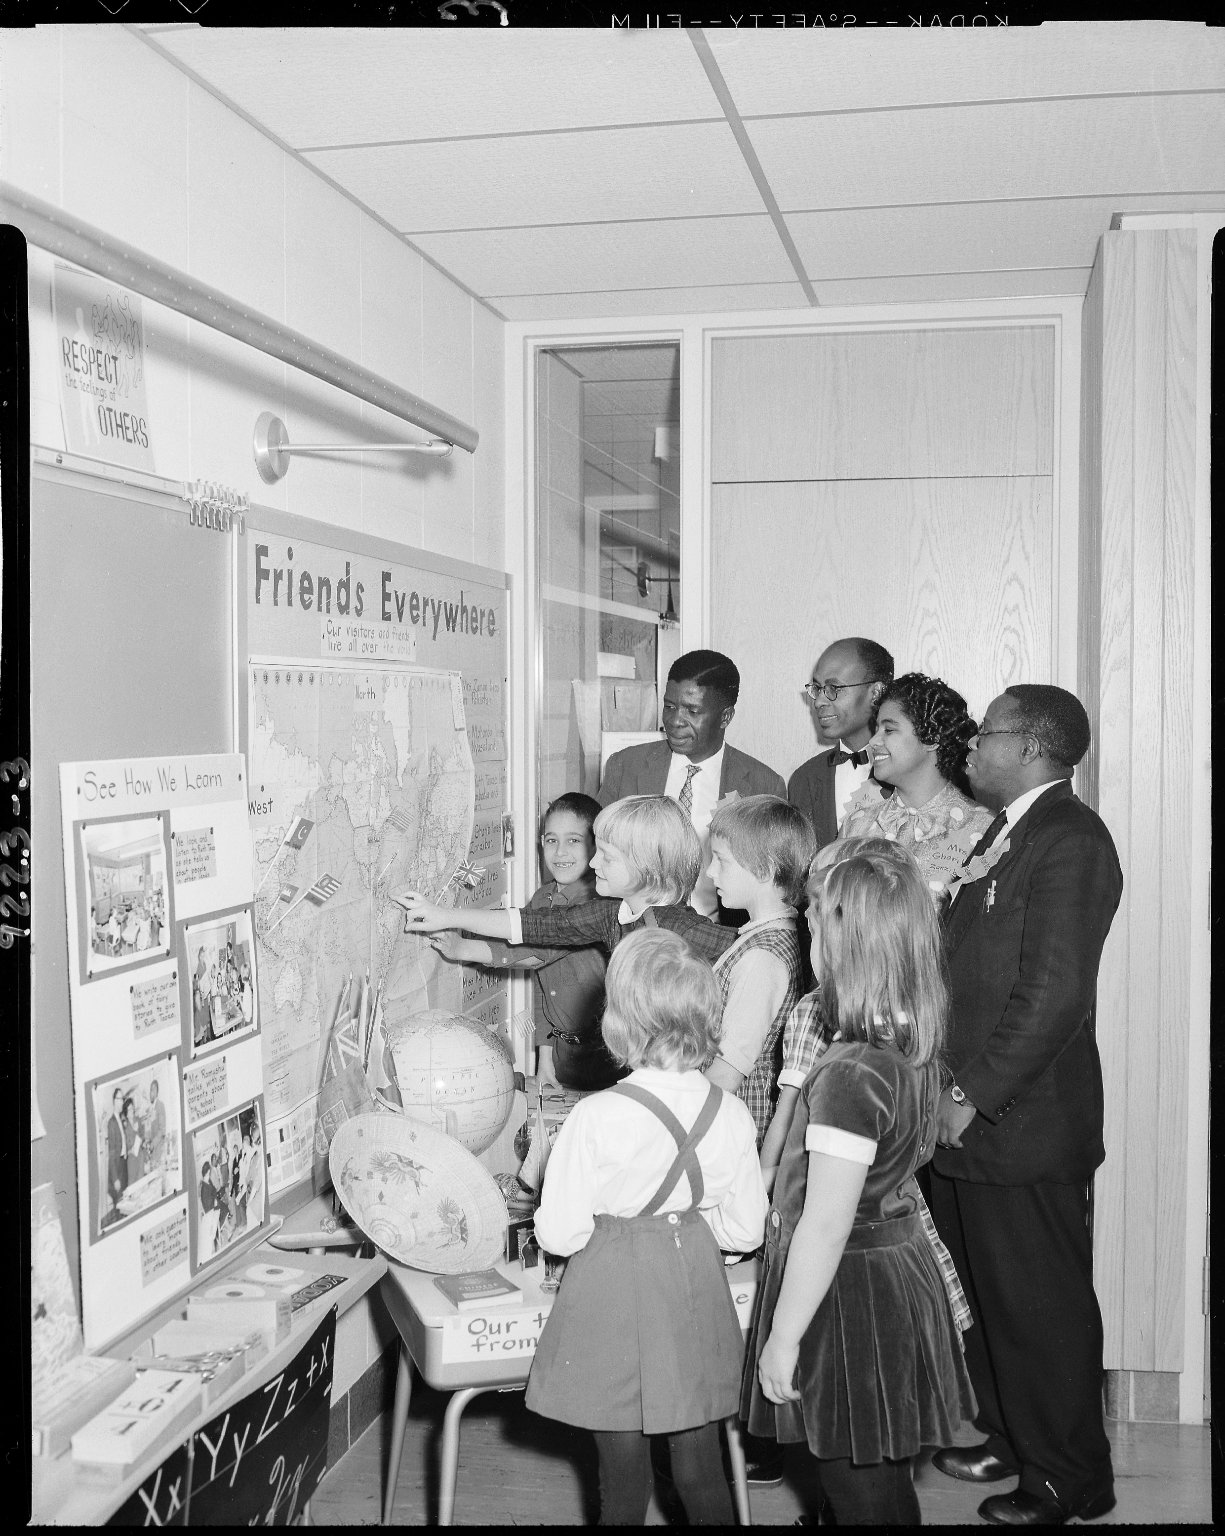 Winchell School, Mrs. Mildred Borton's classroom with visitors looking at map